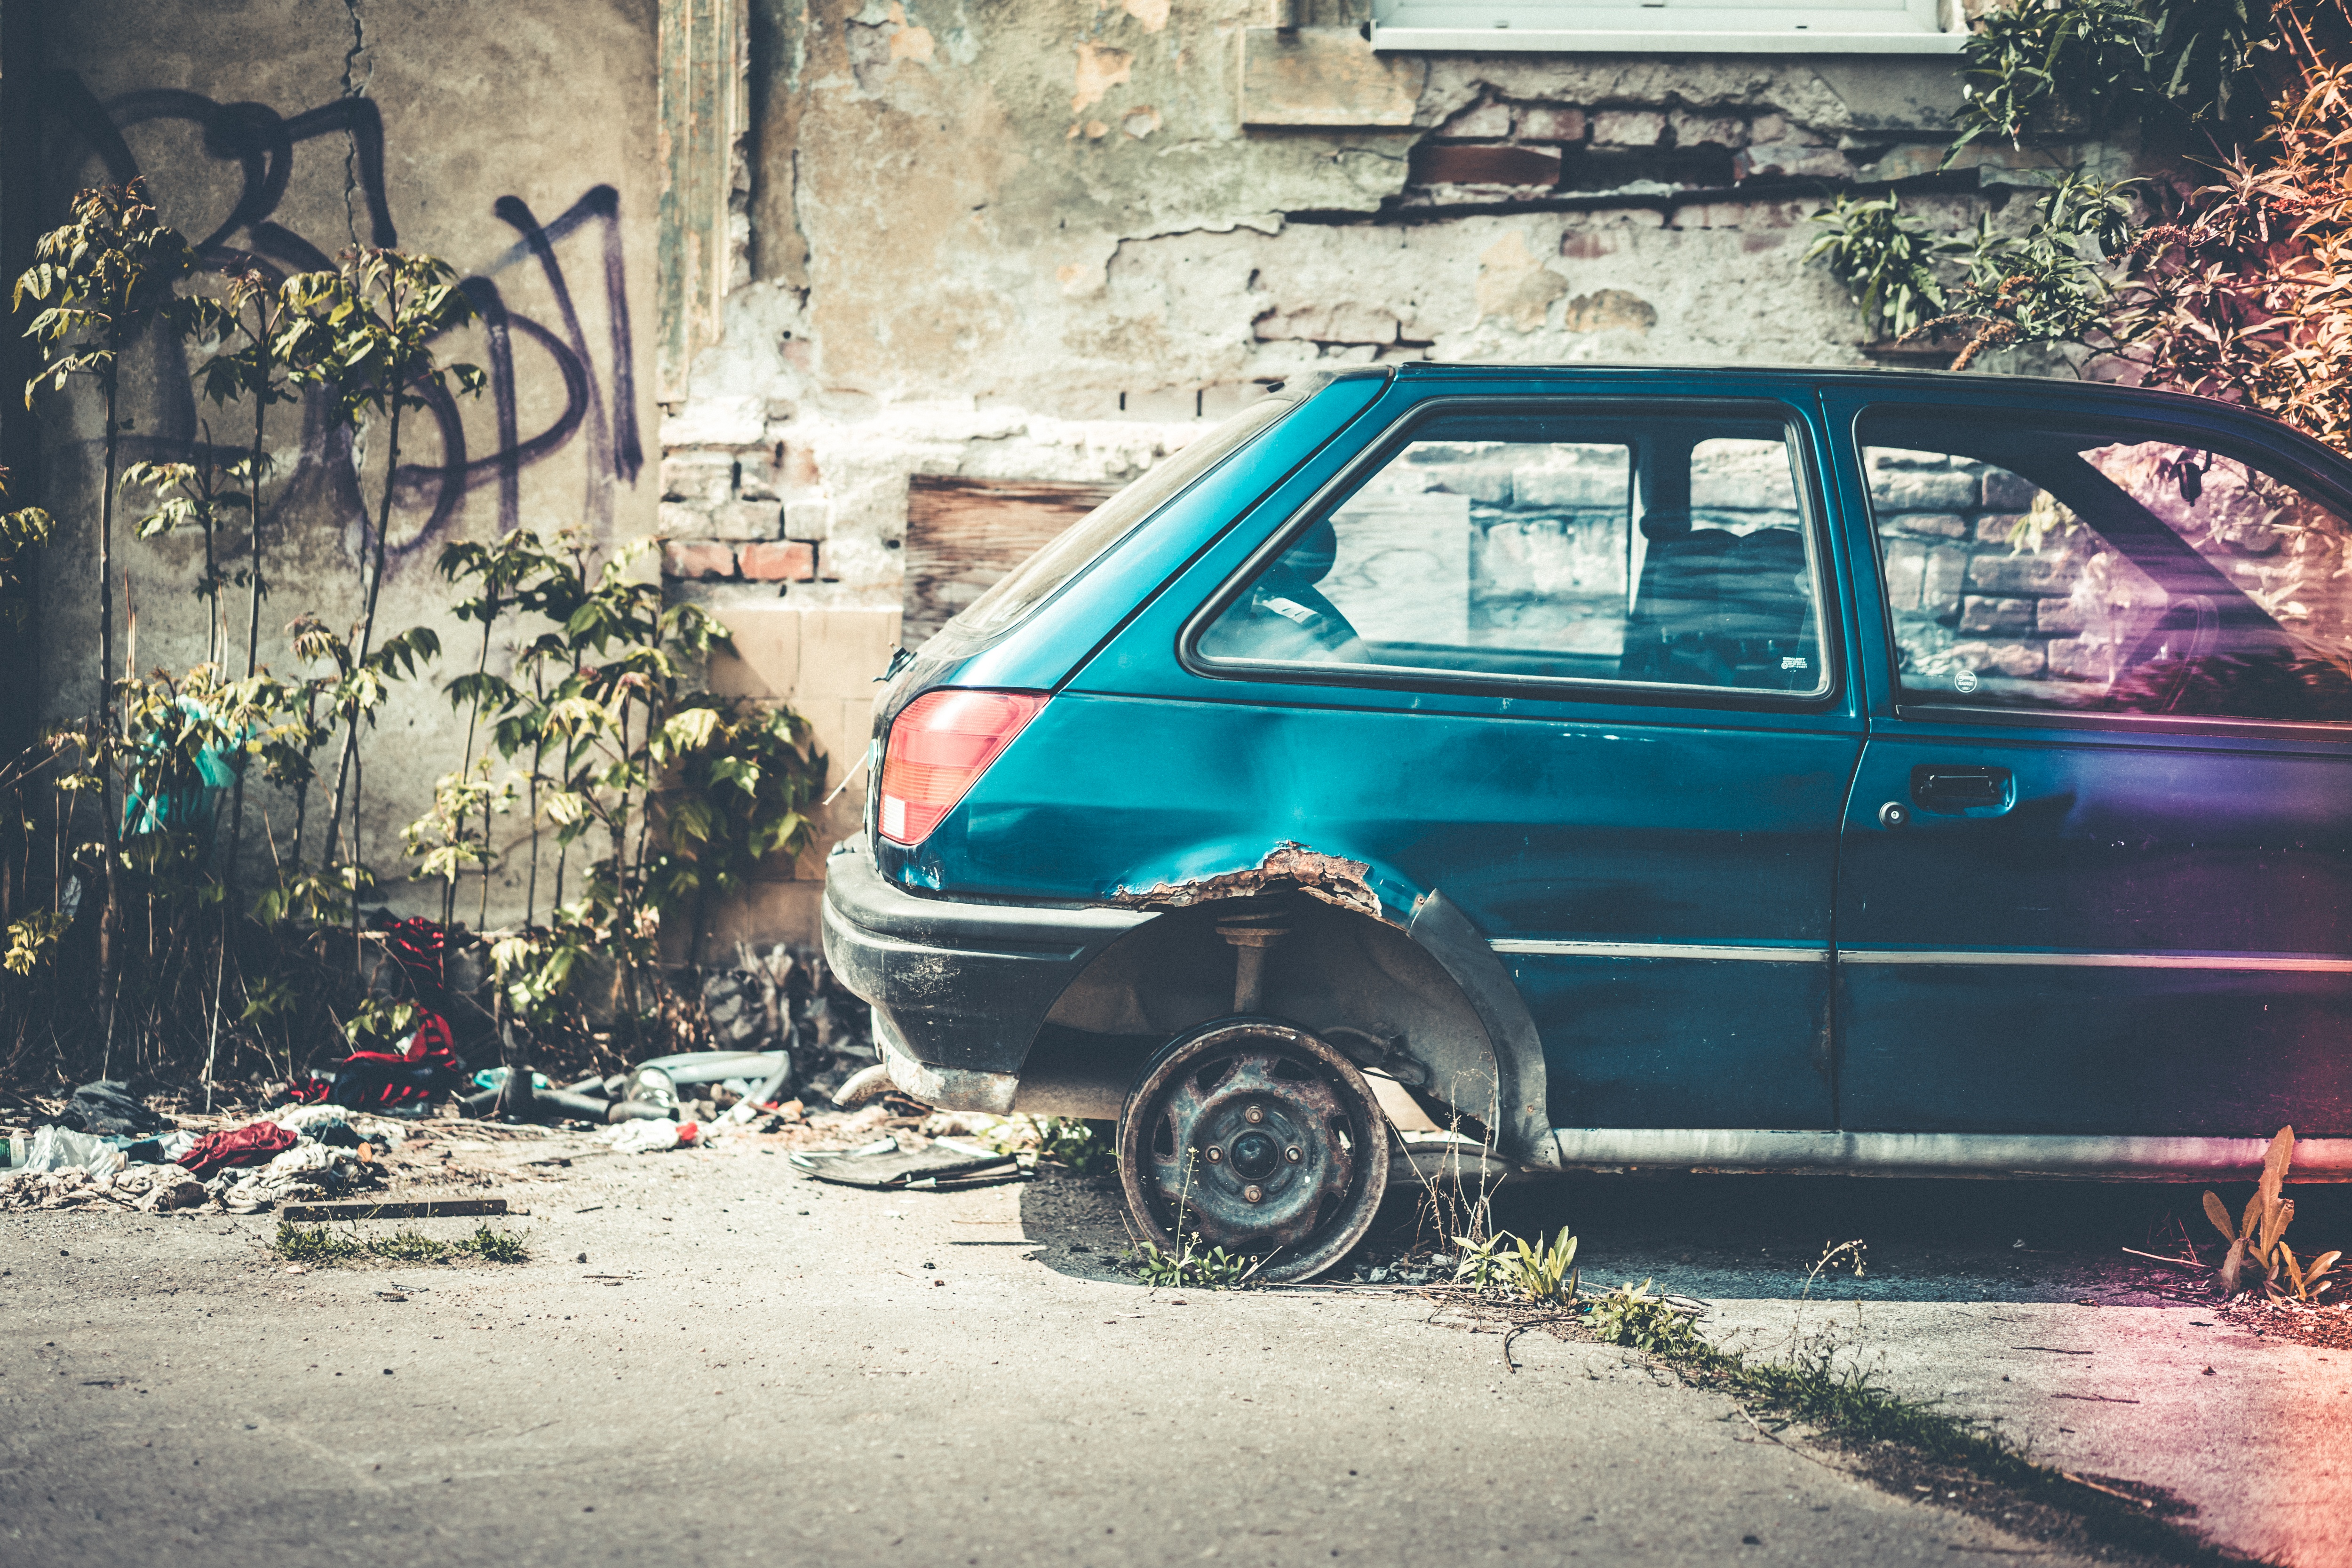 Loans That Can Lead To Car Repossession: Reasons To Avoid Them